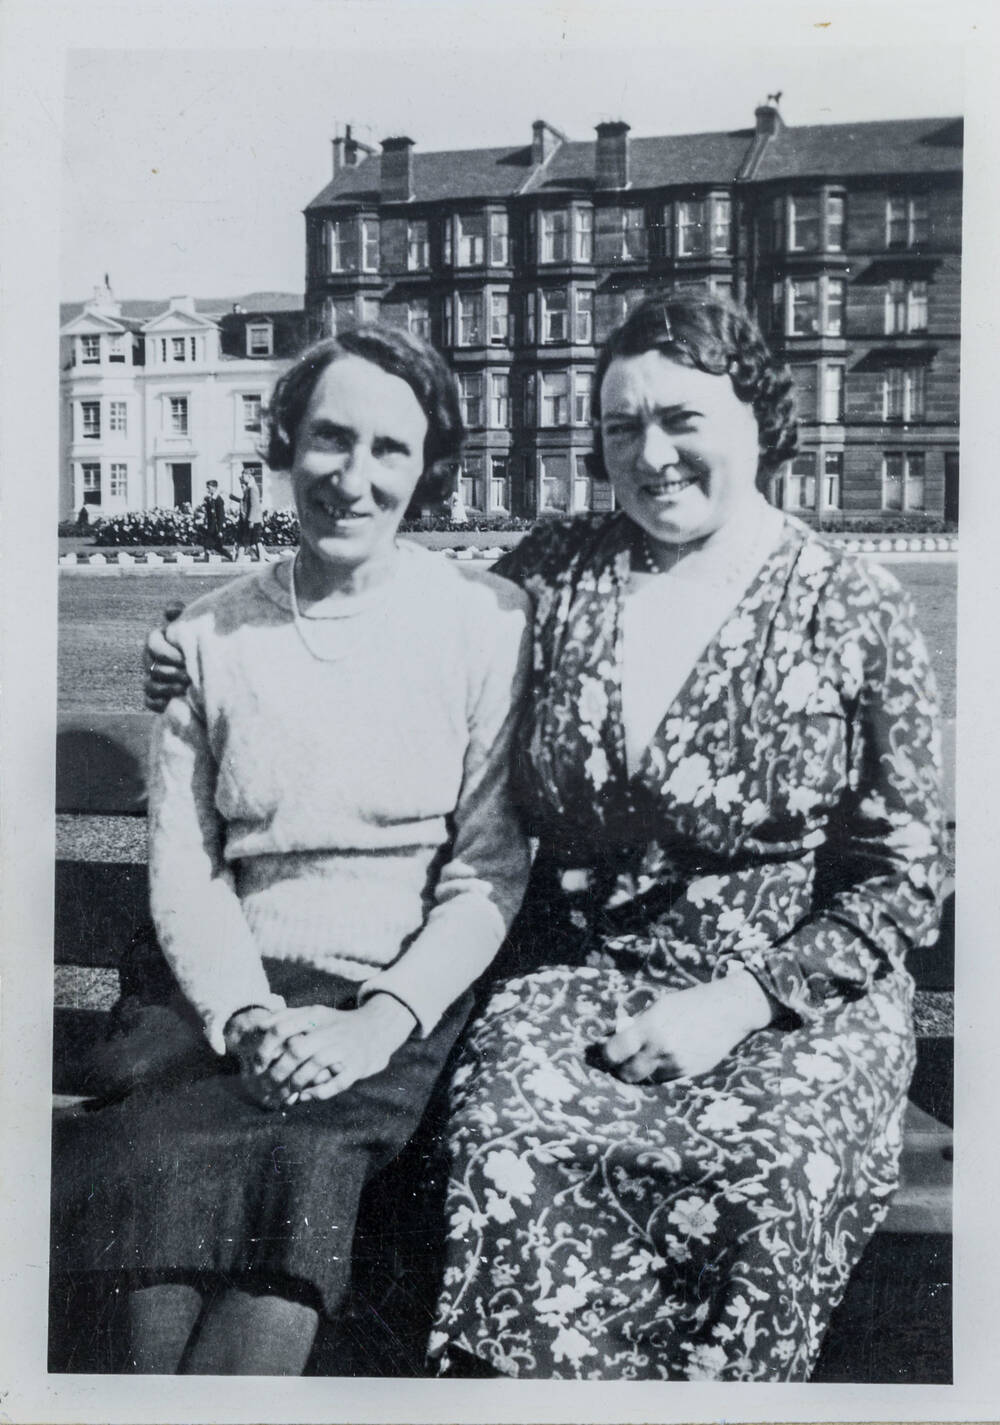 A black and white photo of two women sitting on a bench and smiling. The woman on the right has her arm around the other.